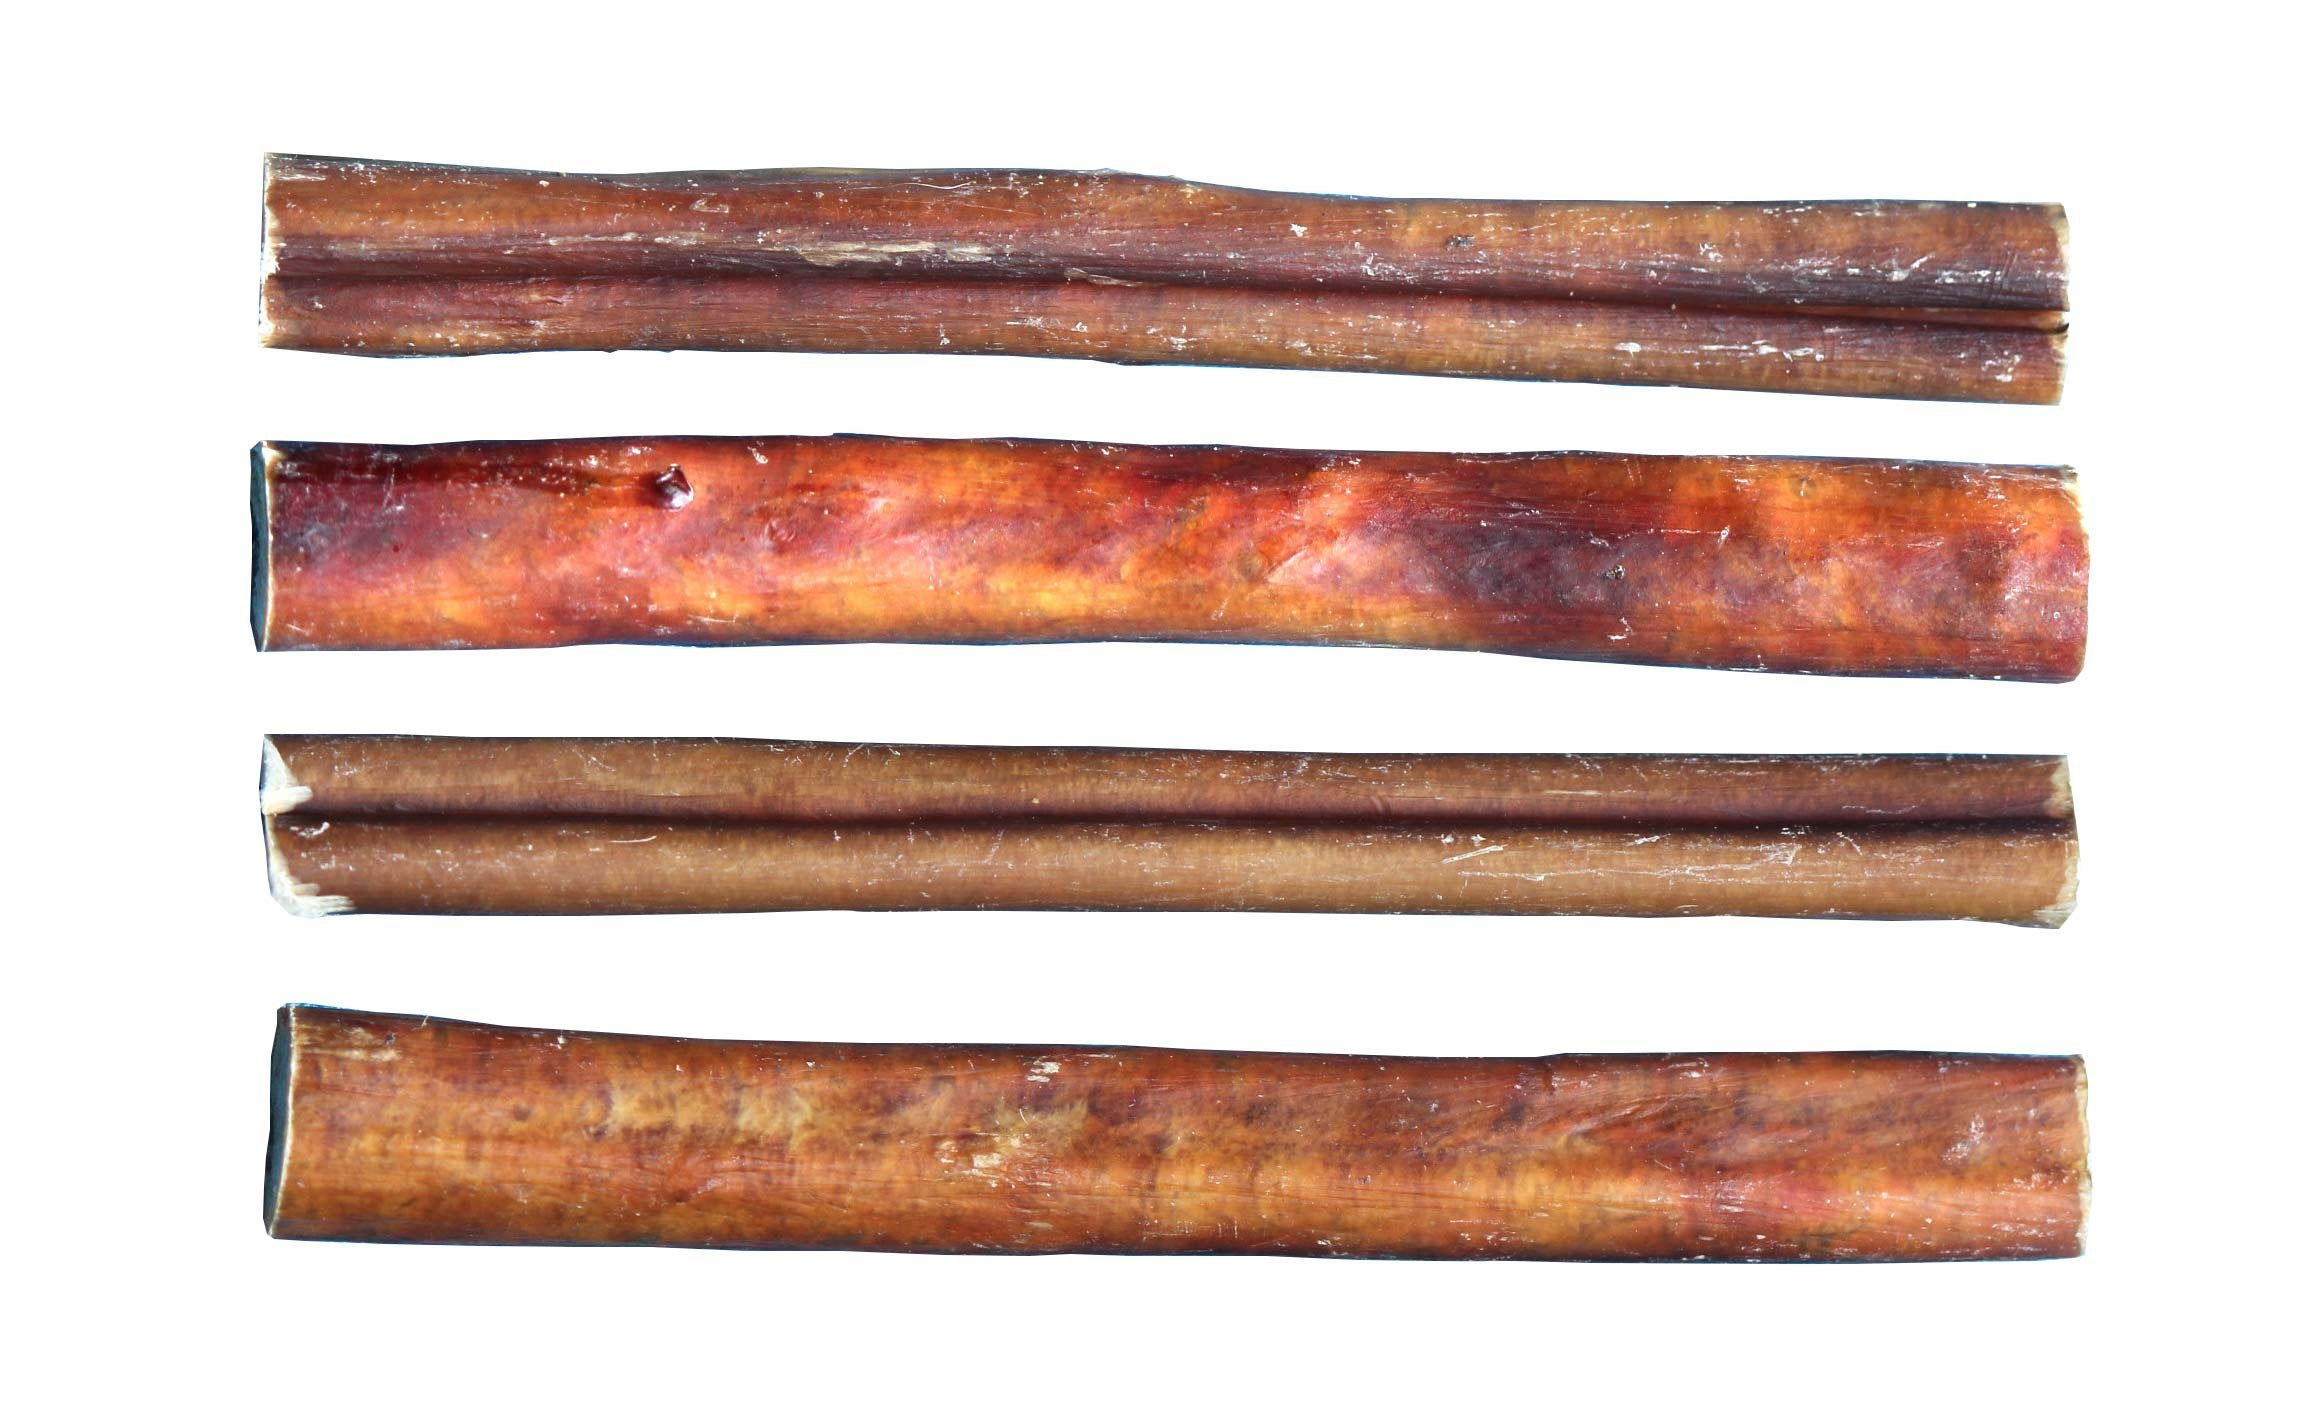 Downtown Pet Supply 6'' BULLY STICKS - Free Range Standard Regular Thick Select 6 inch (48 Pack) by Downtown Pet Supply (Image #4)